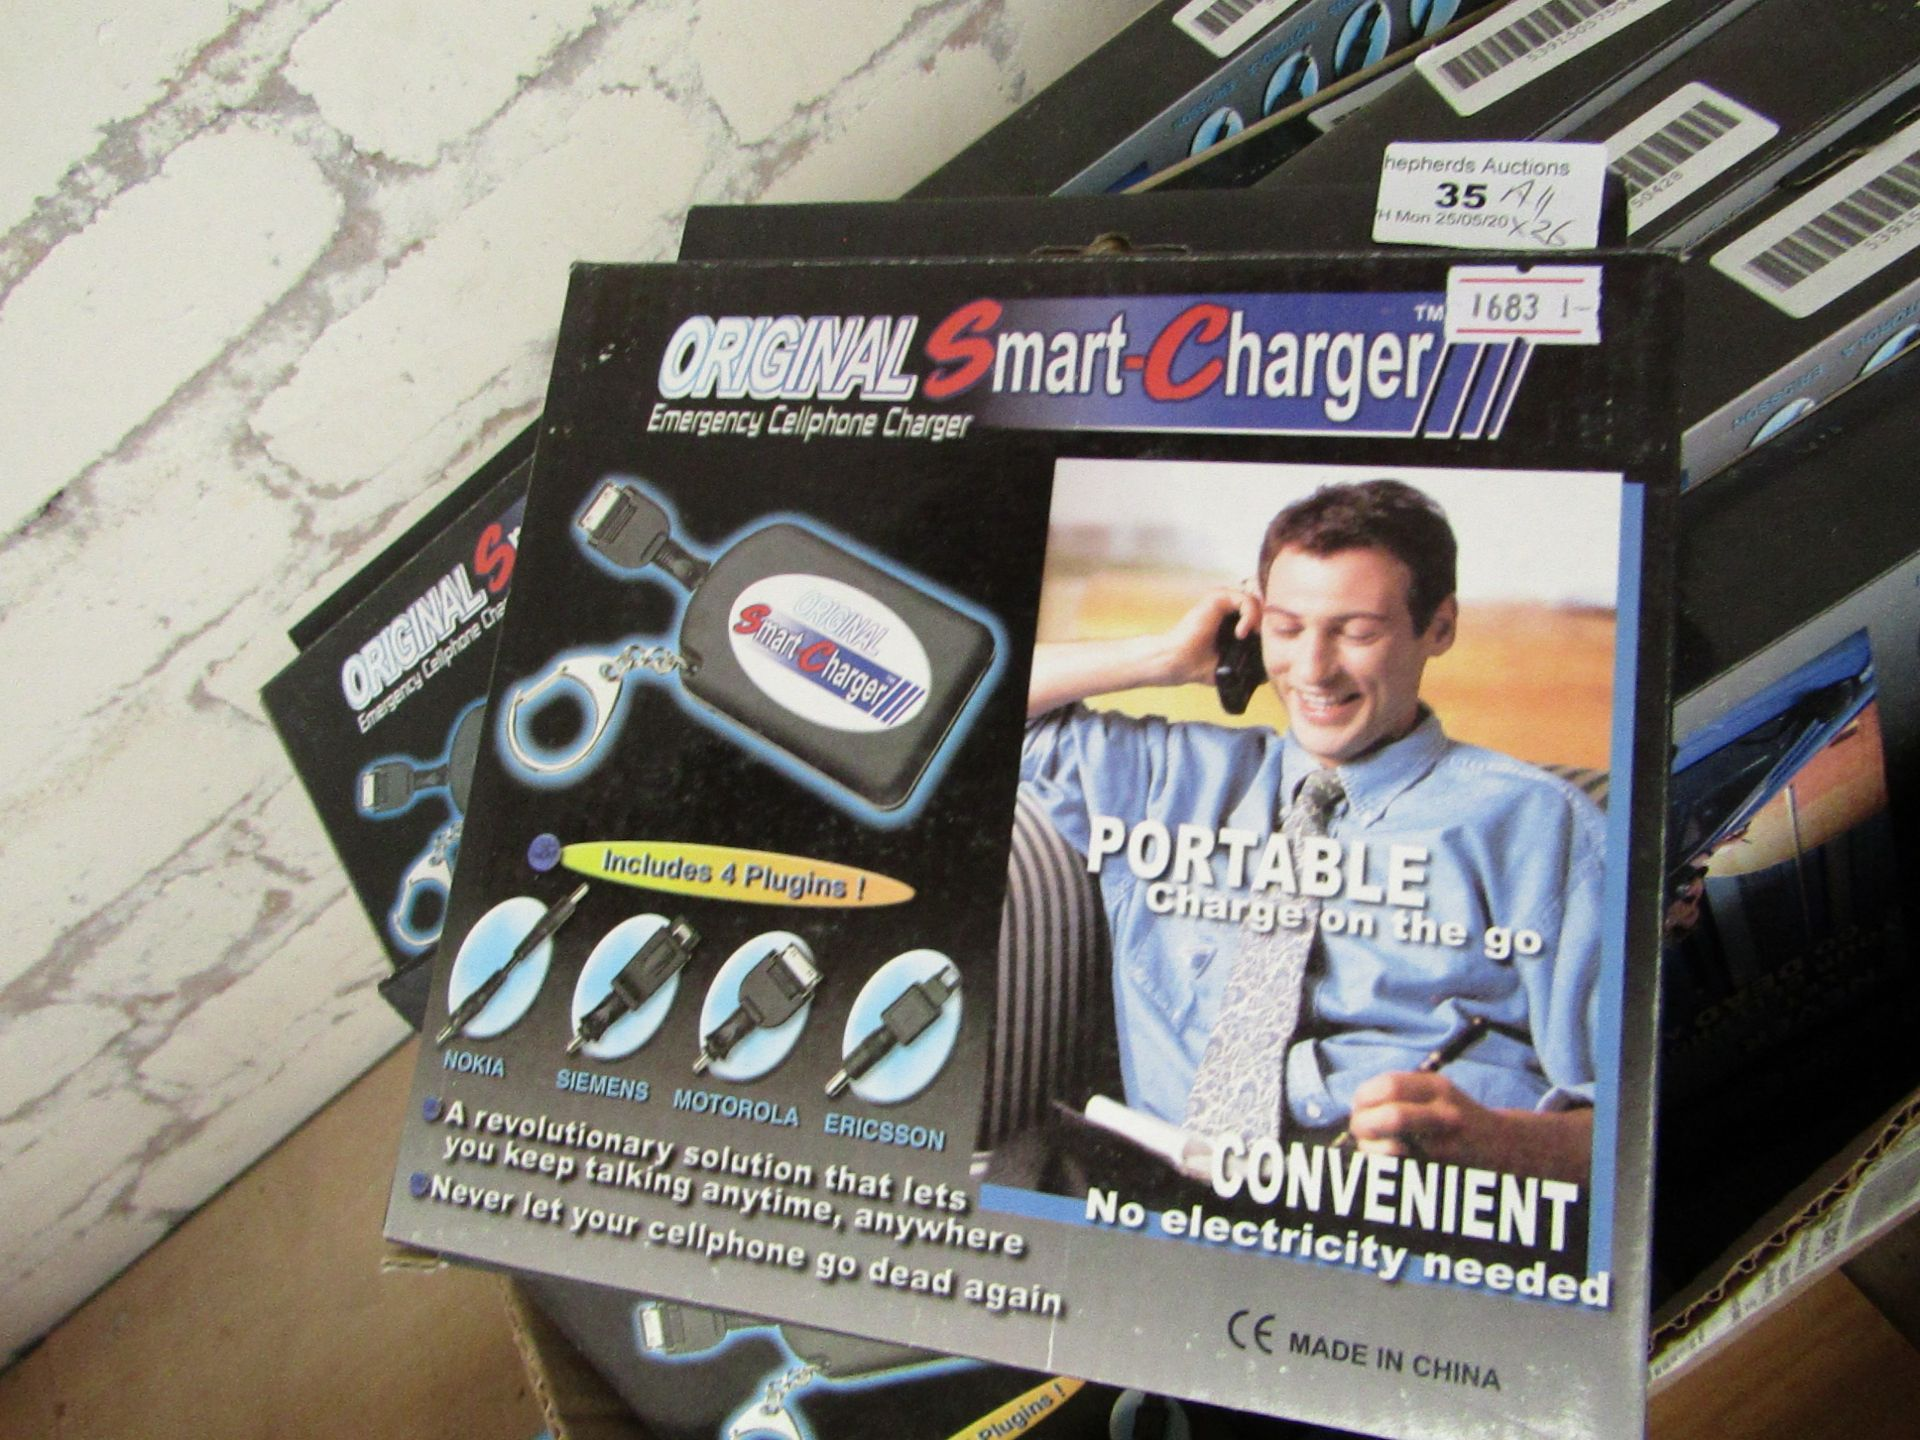 Lot 35 - 26 x Original Smart Chargers. Boxed